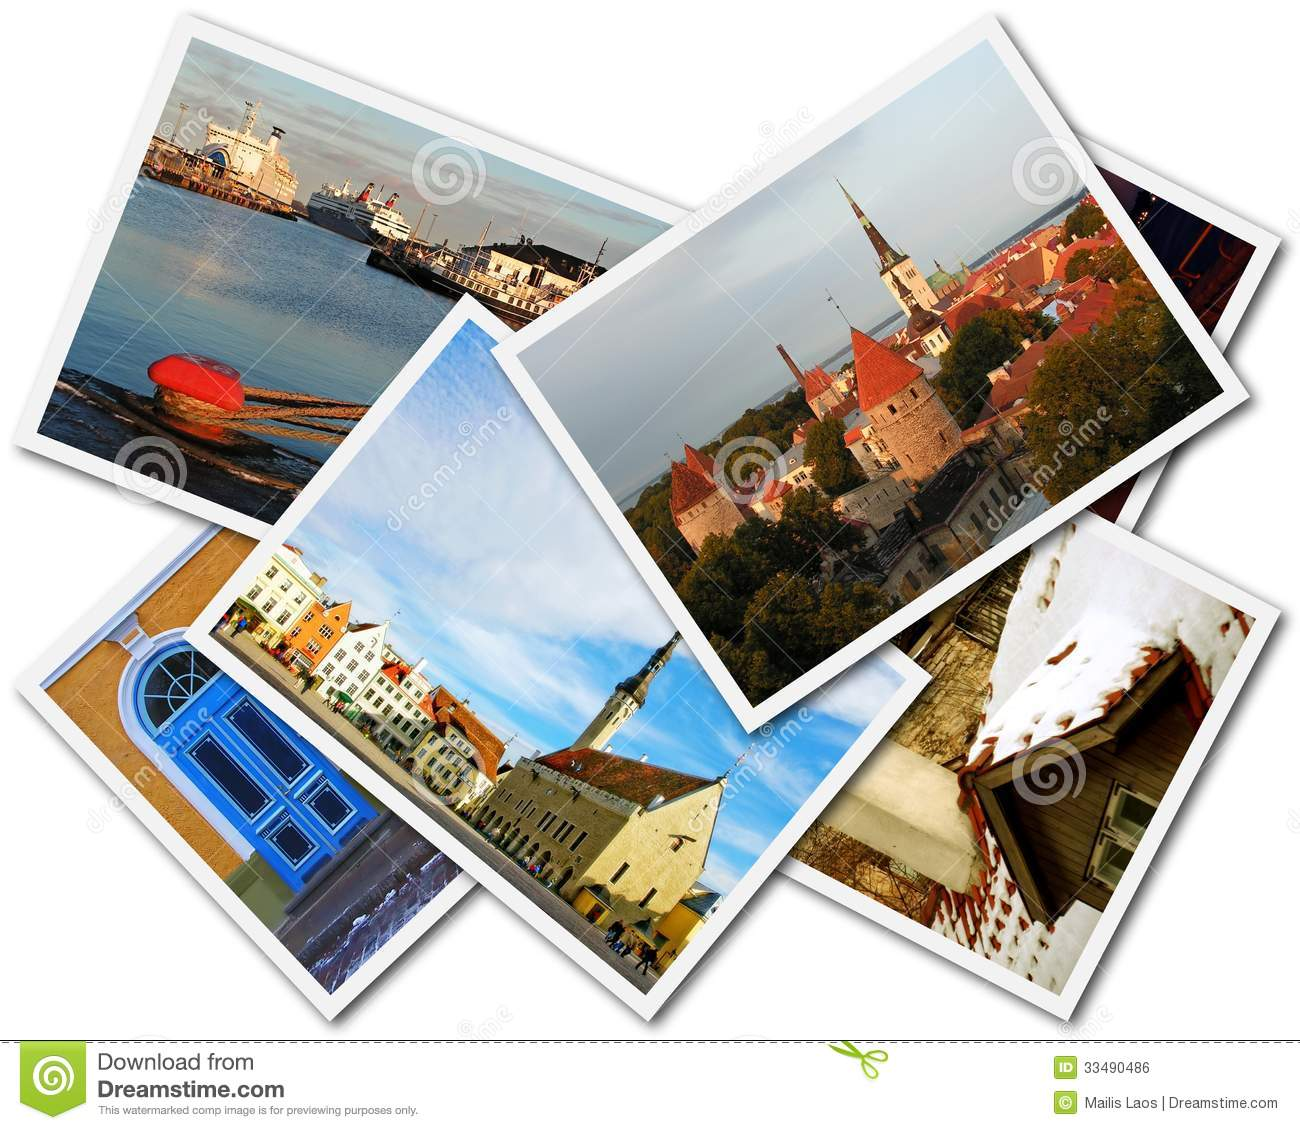 Download Tallinn Photos stock photo. Image of snap, collage, overlapping - 33490486